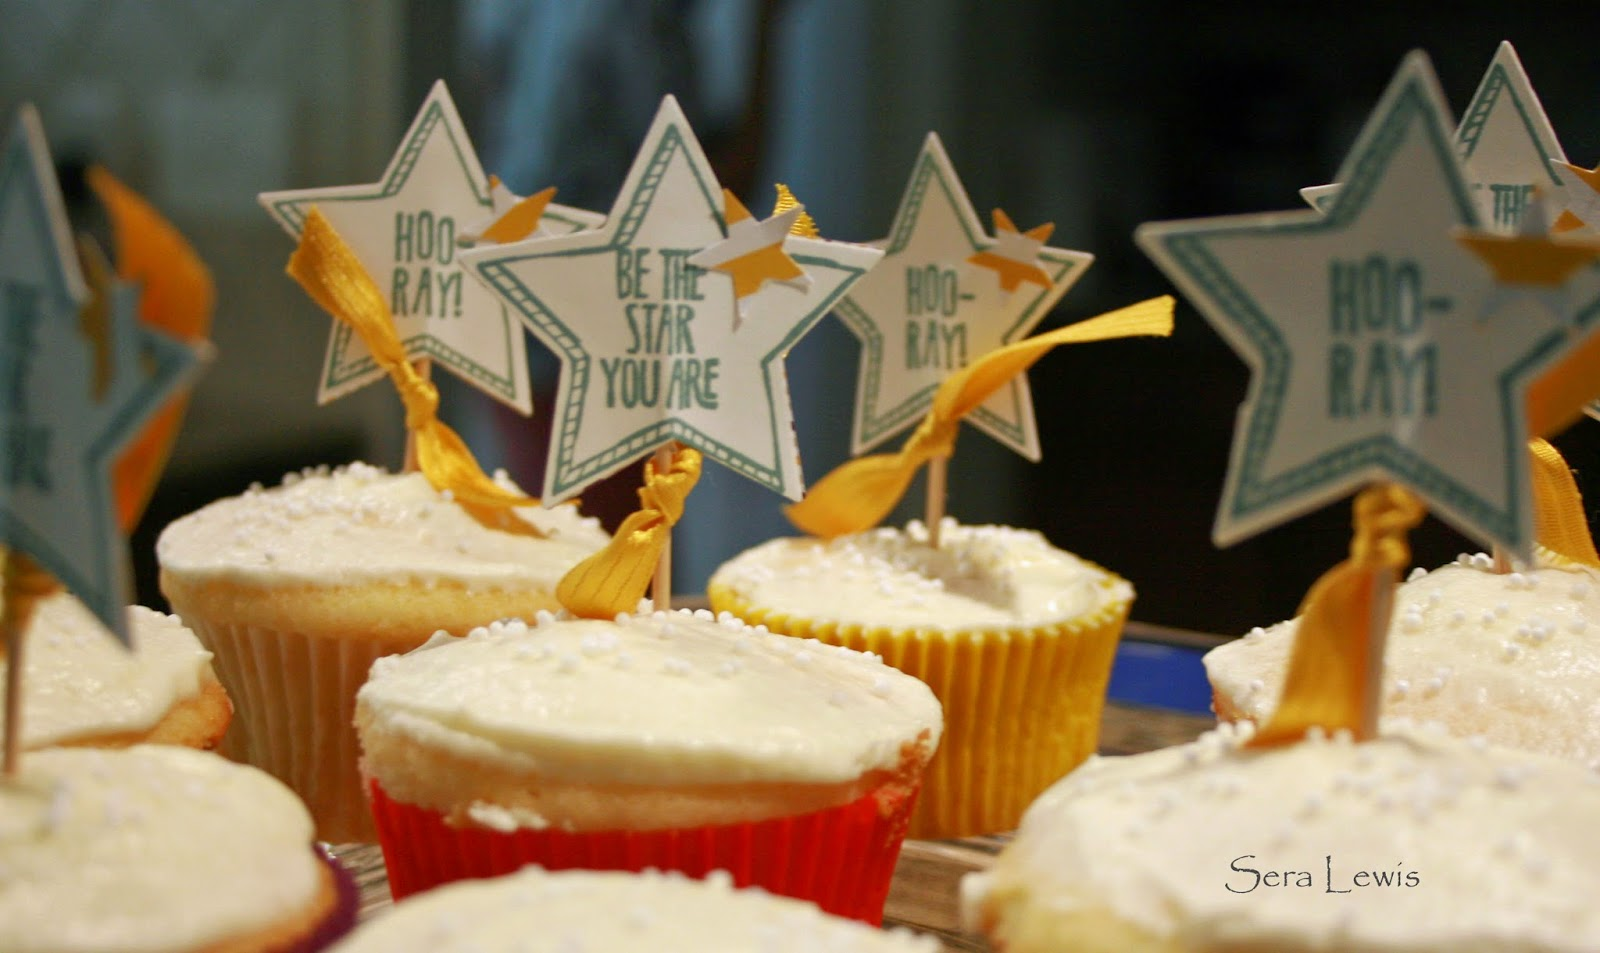 Stampin' Up! Be the Star cupcakes picks